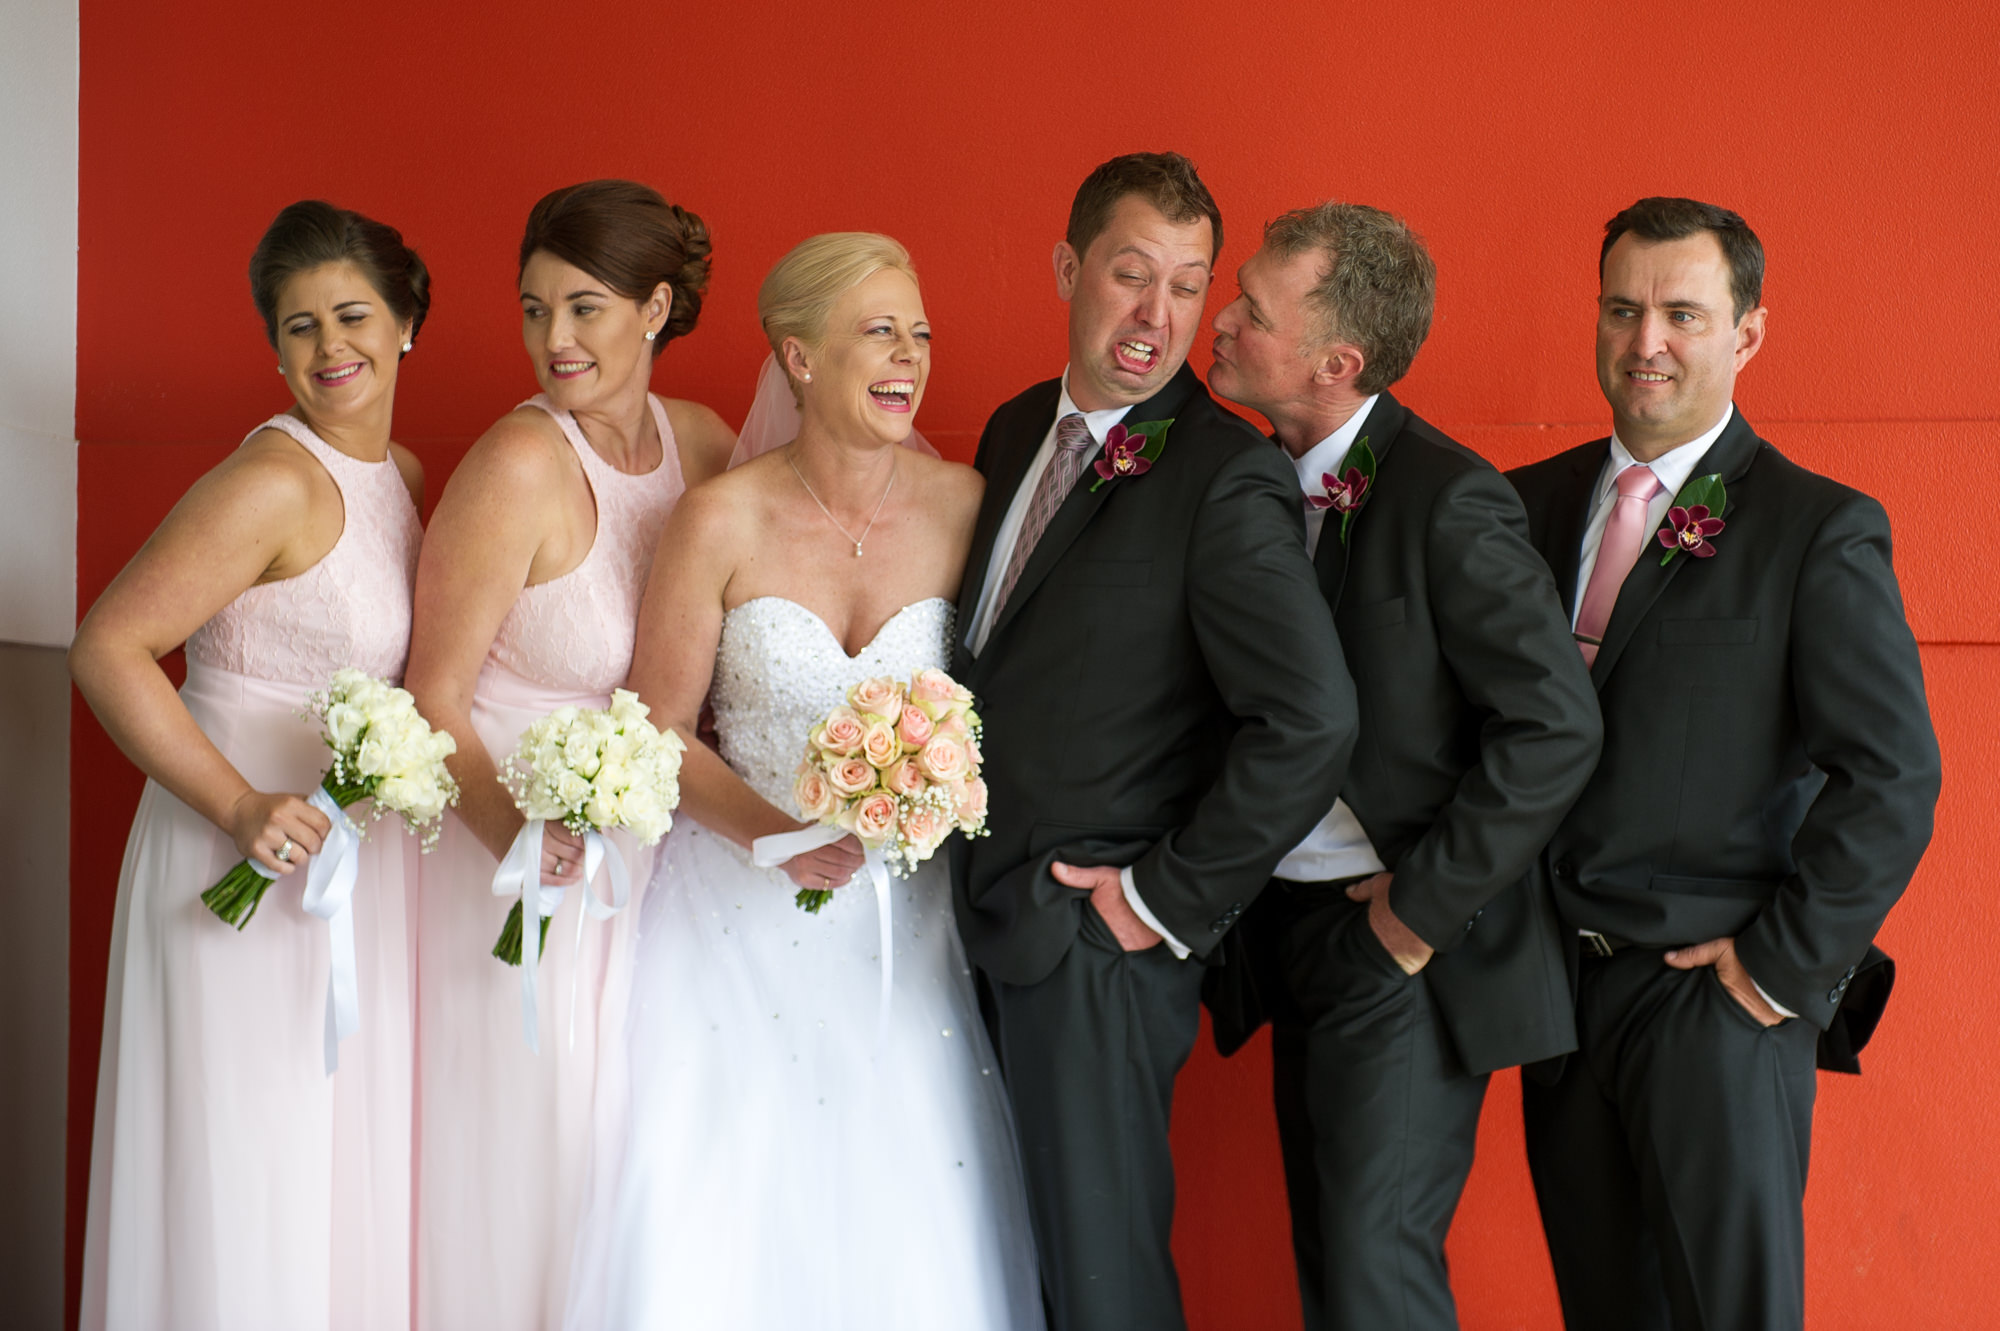 Bridal party fun photo with men pulling funny faces and women laughing